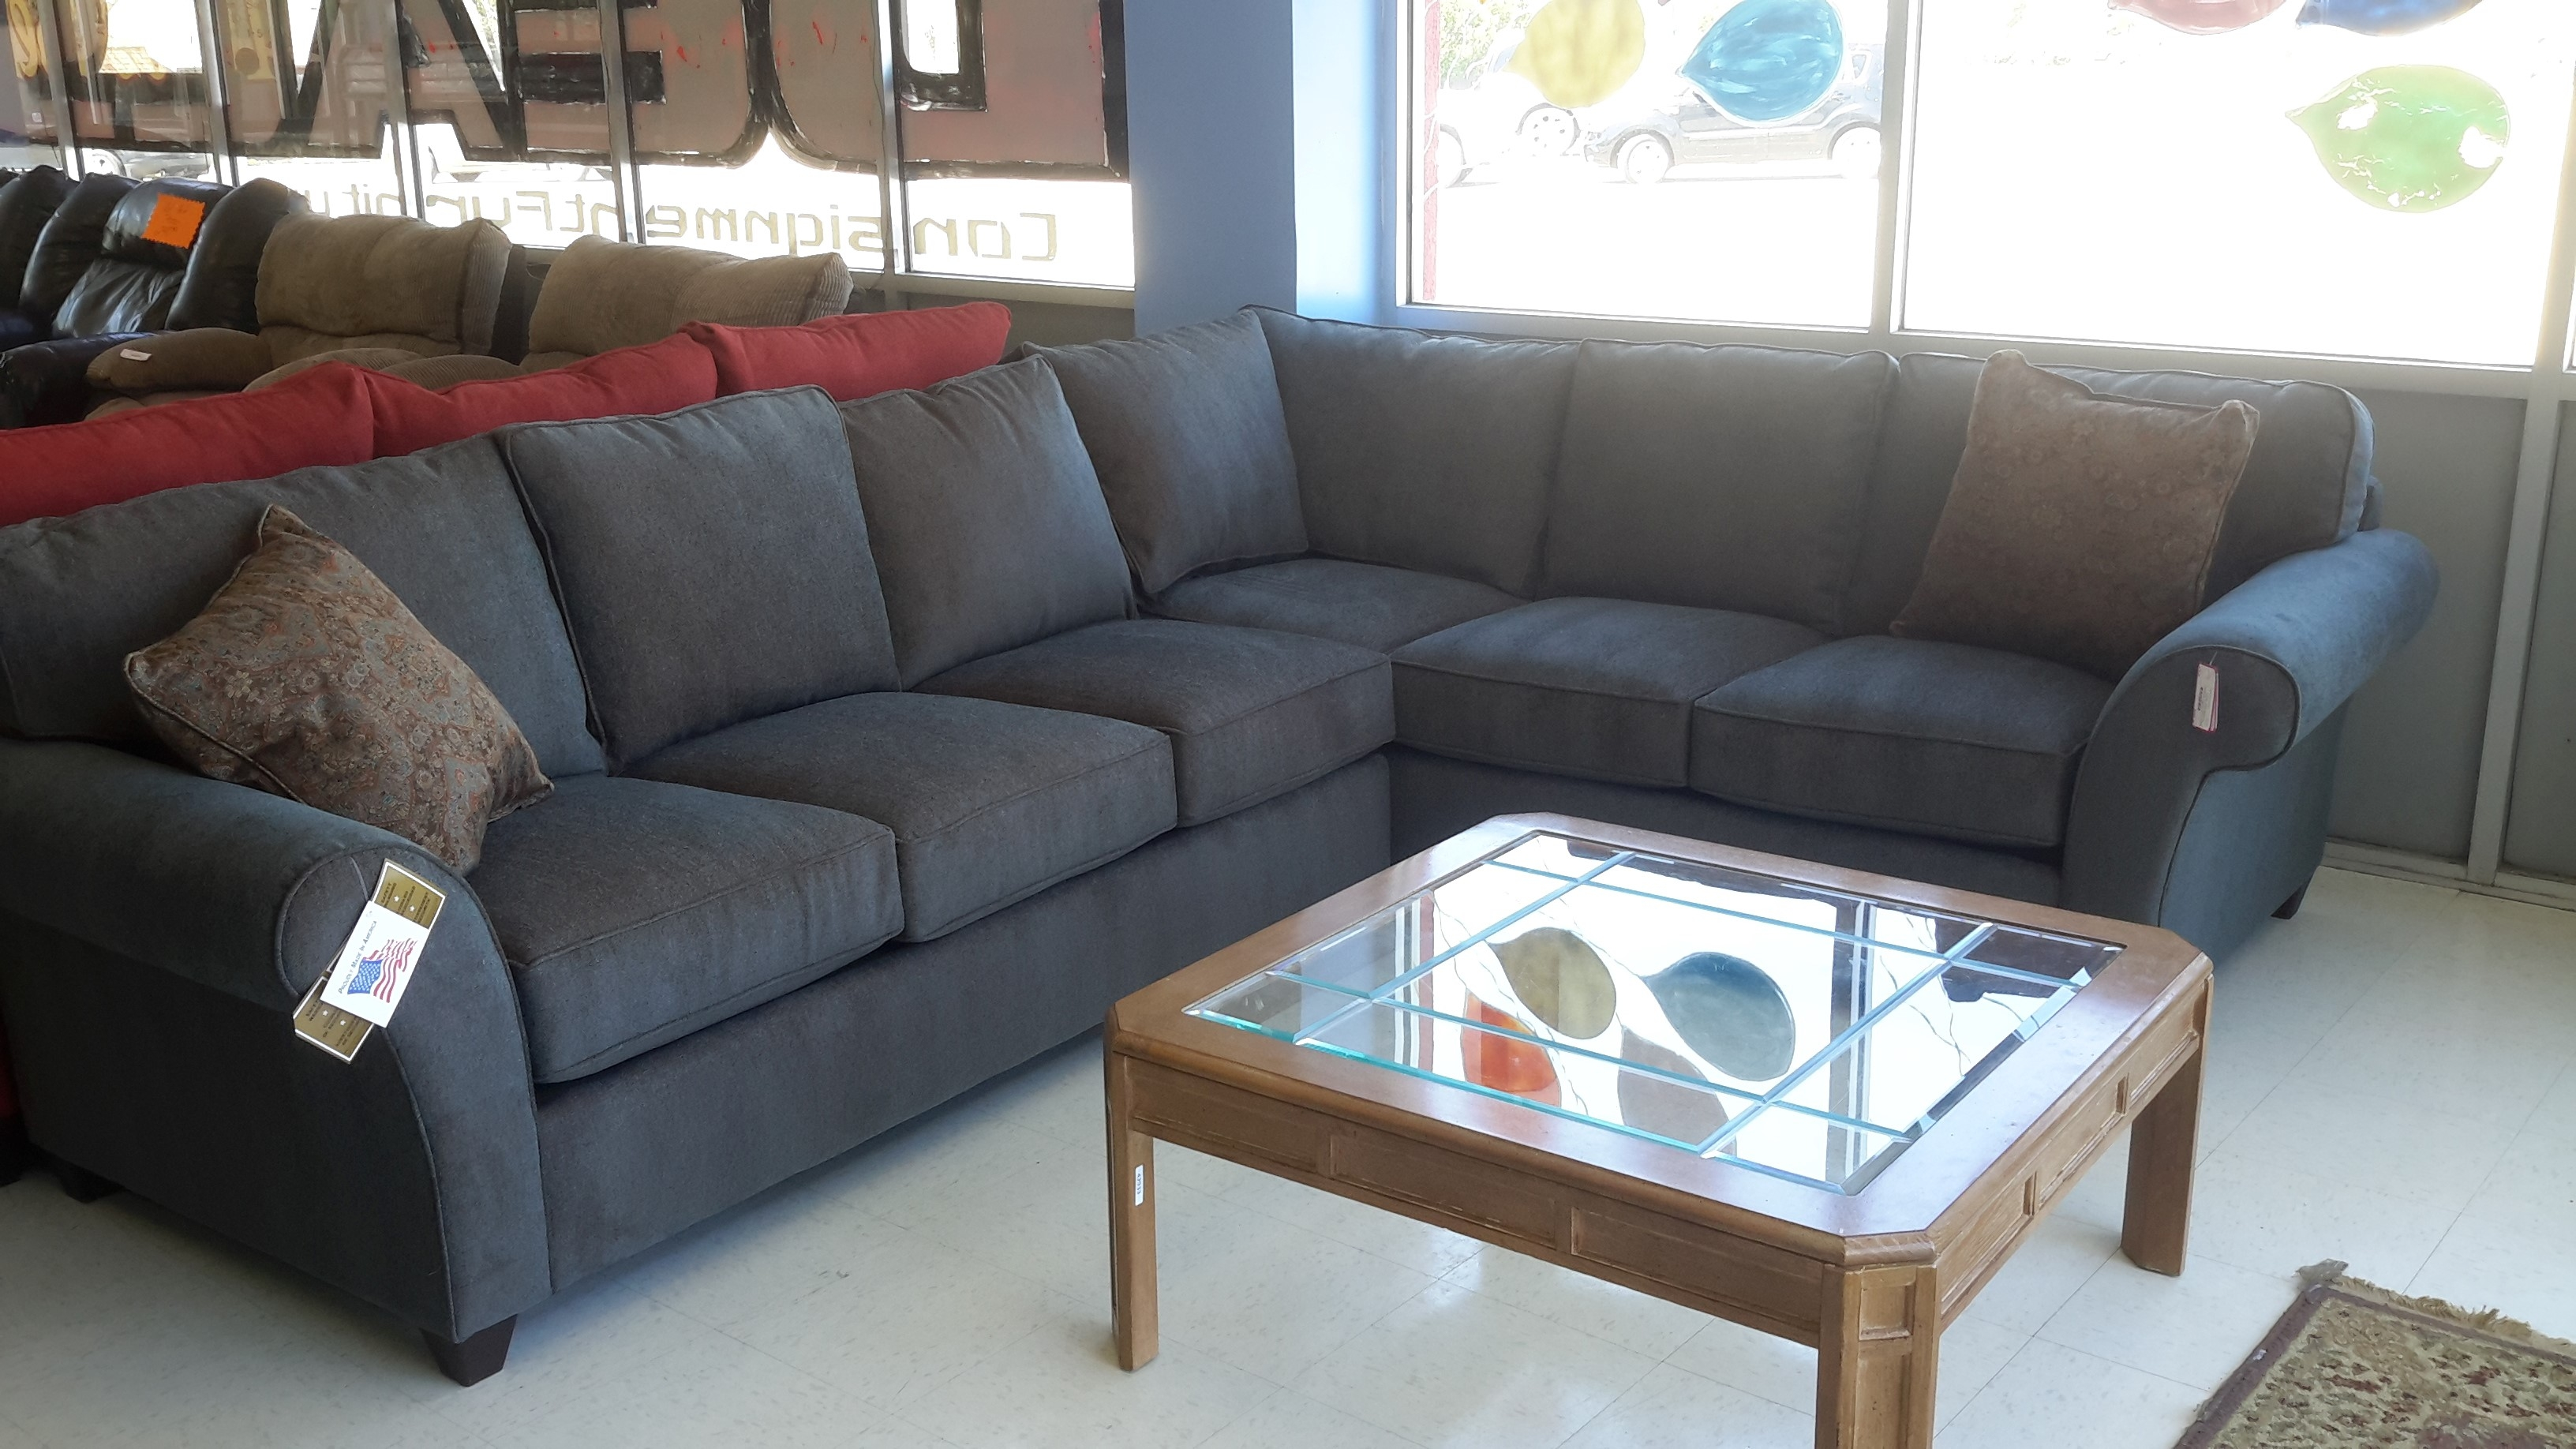 bauhaus sofas products sofa repair noida extension sectional viewing photos of